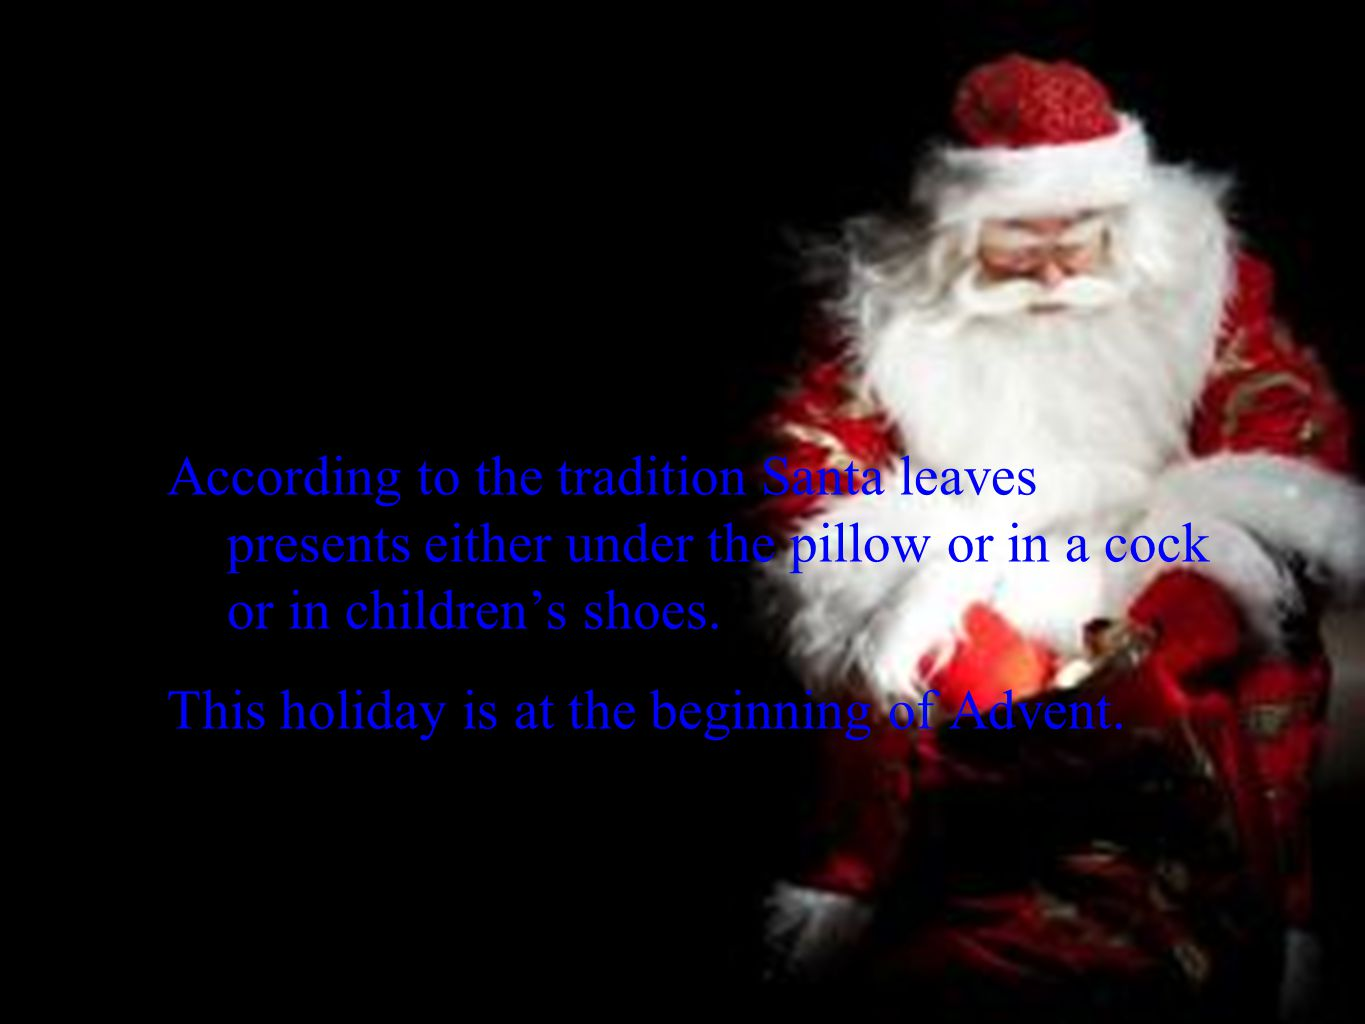 According to the tradition Santa leaves presents either under the pillow or in a cock or in children's shoes. This holiday is at the beginning of Adve